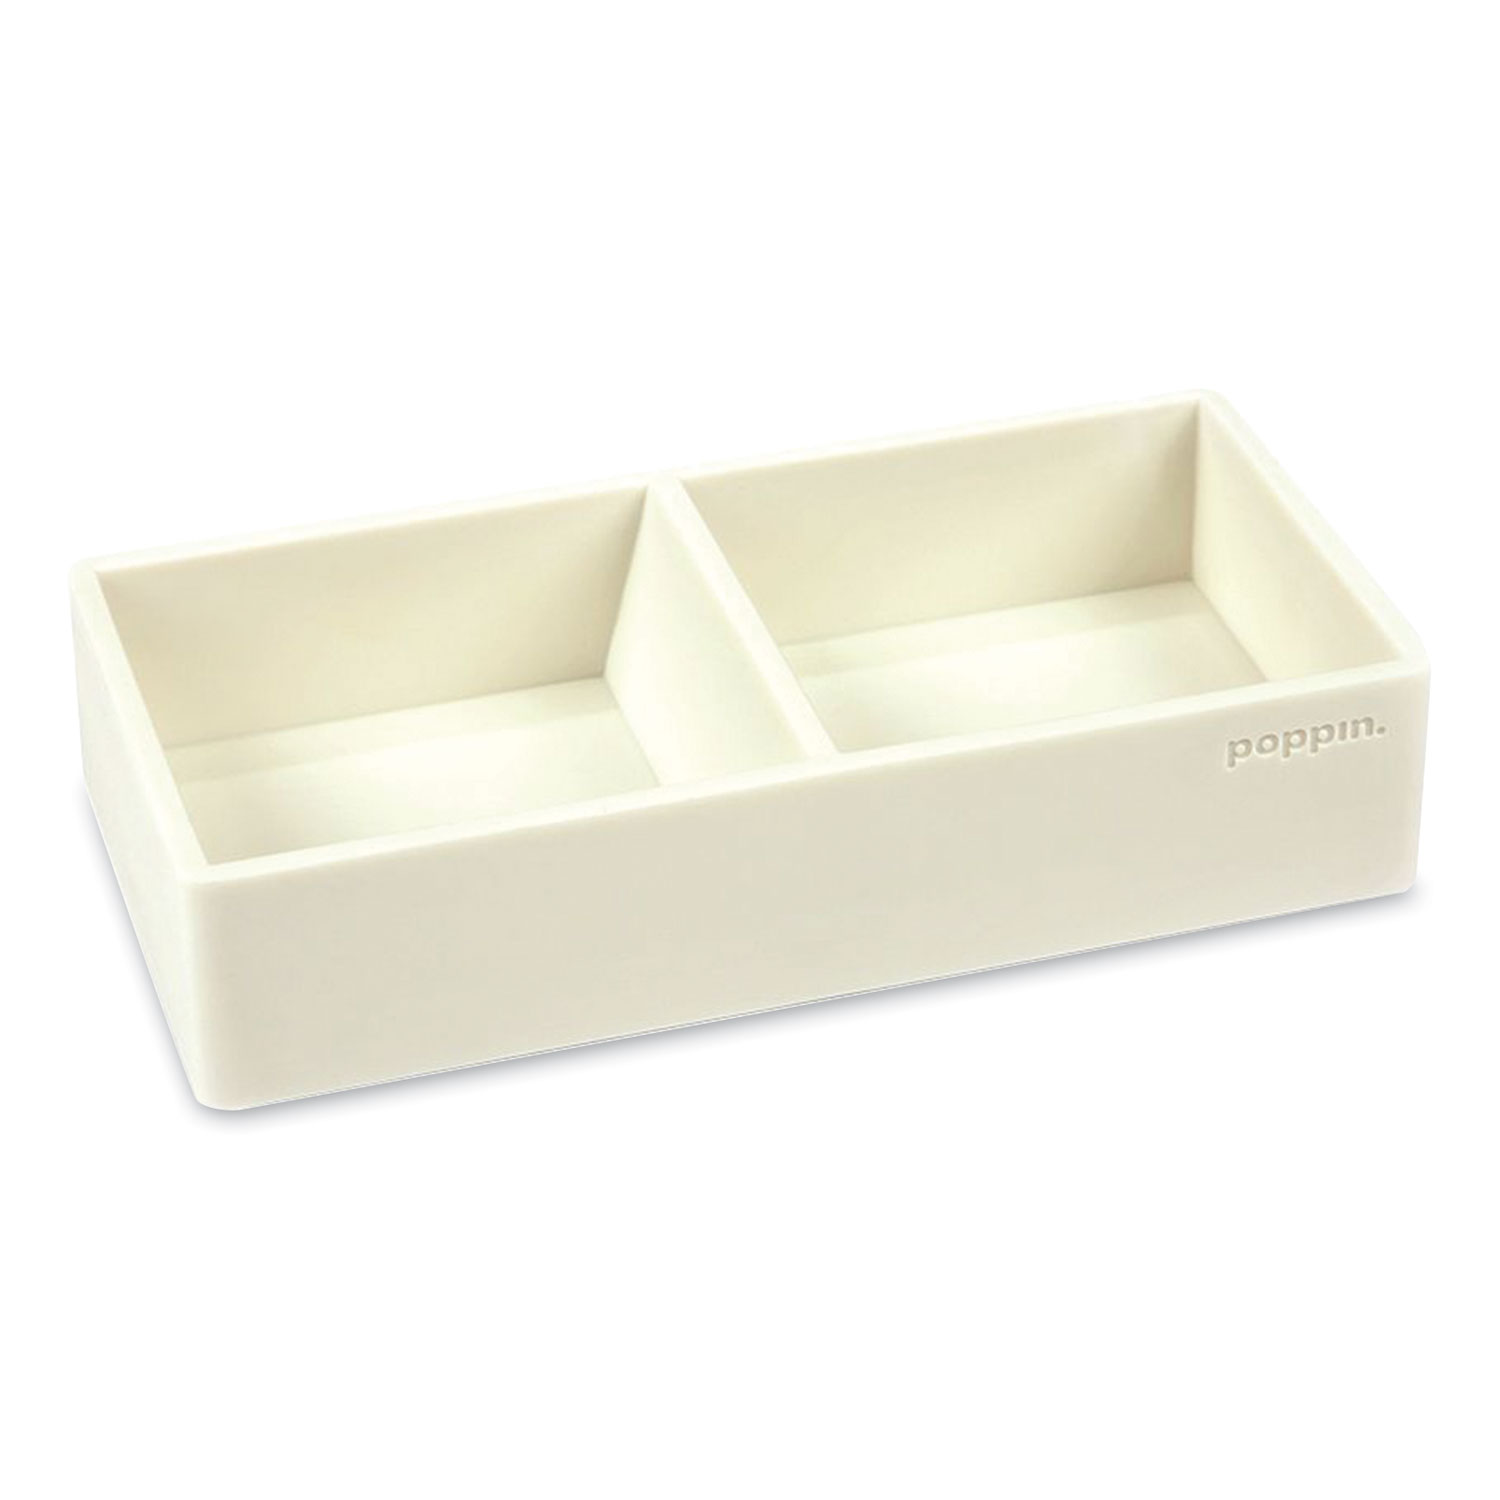 Poppin Softie This + That Tray, 2-Compartment, 3 x 6.25 x 1.5, White